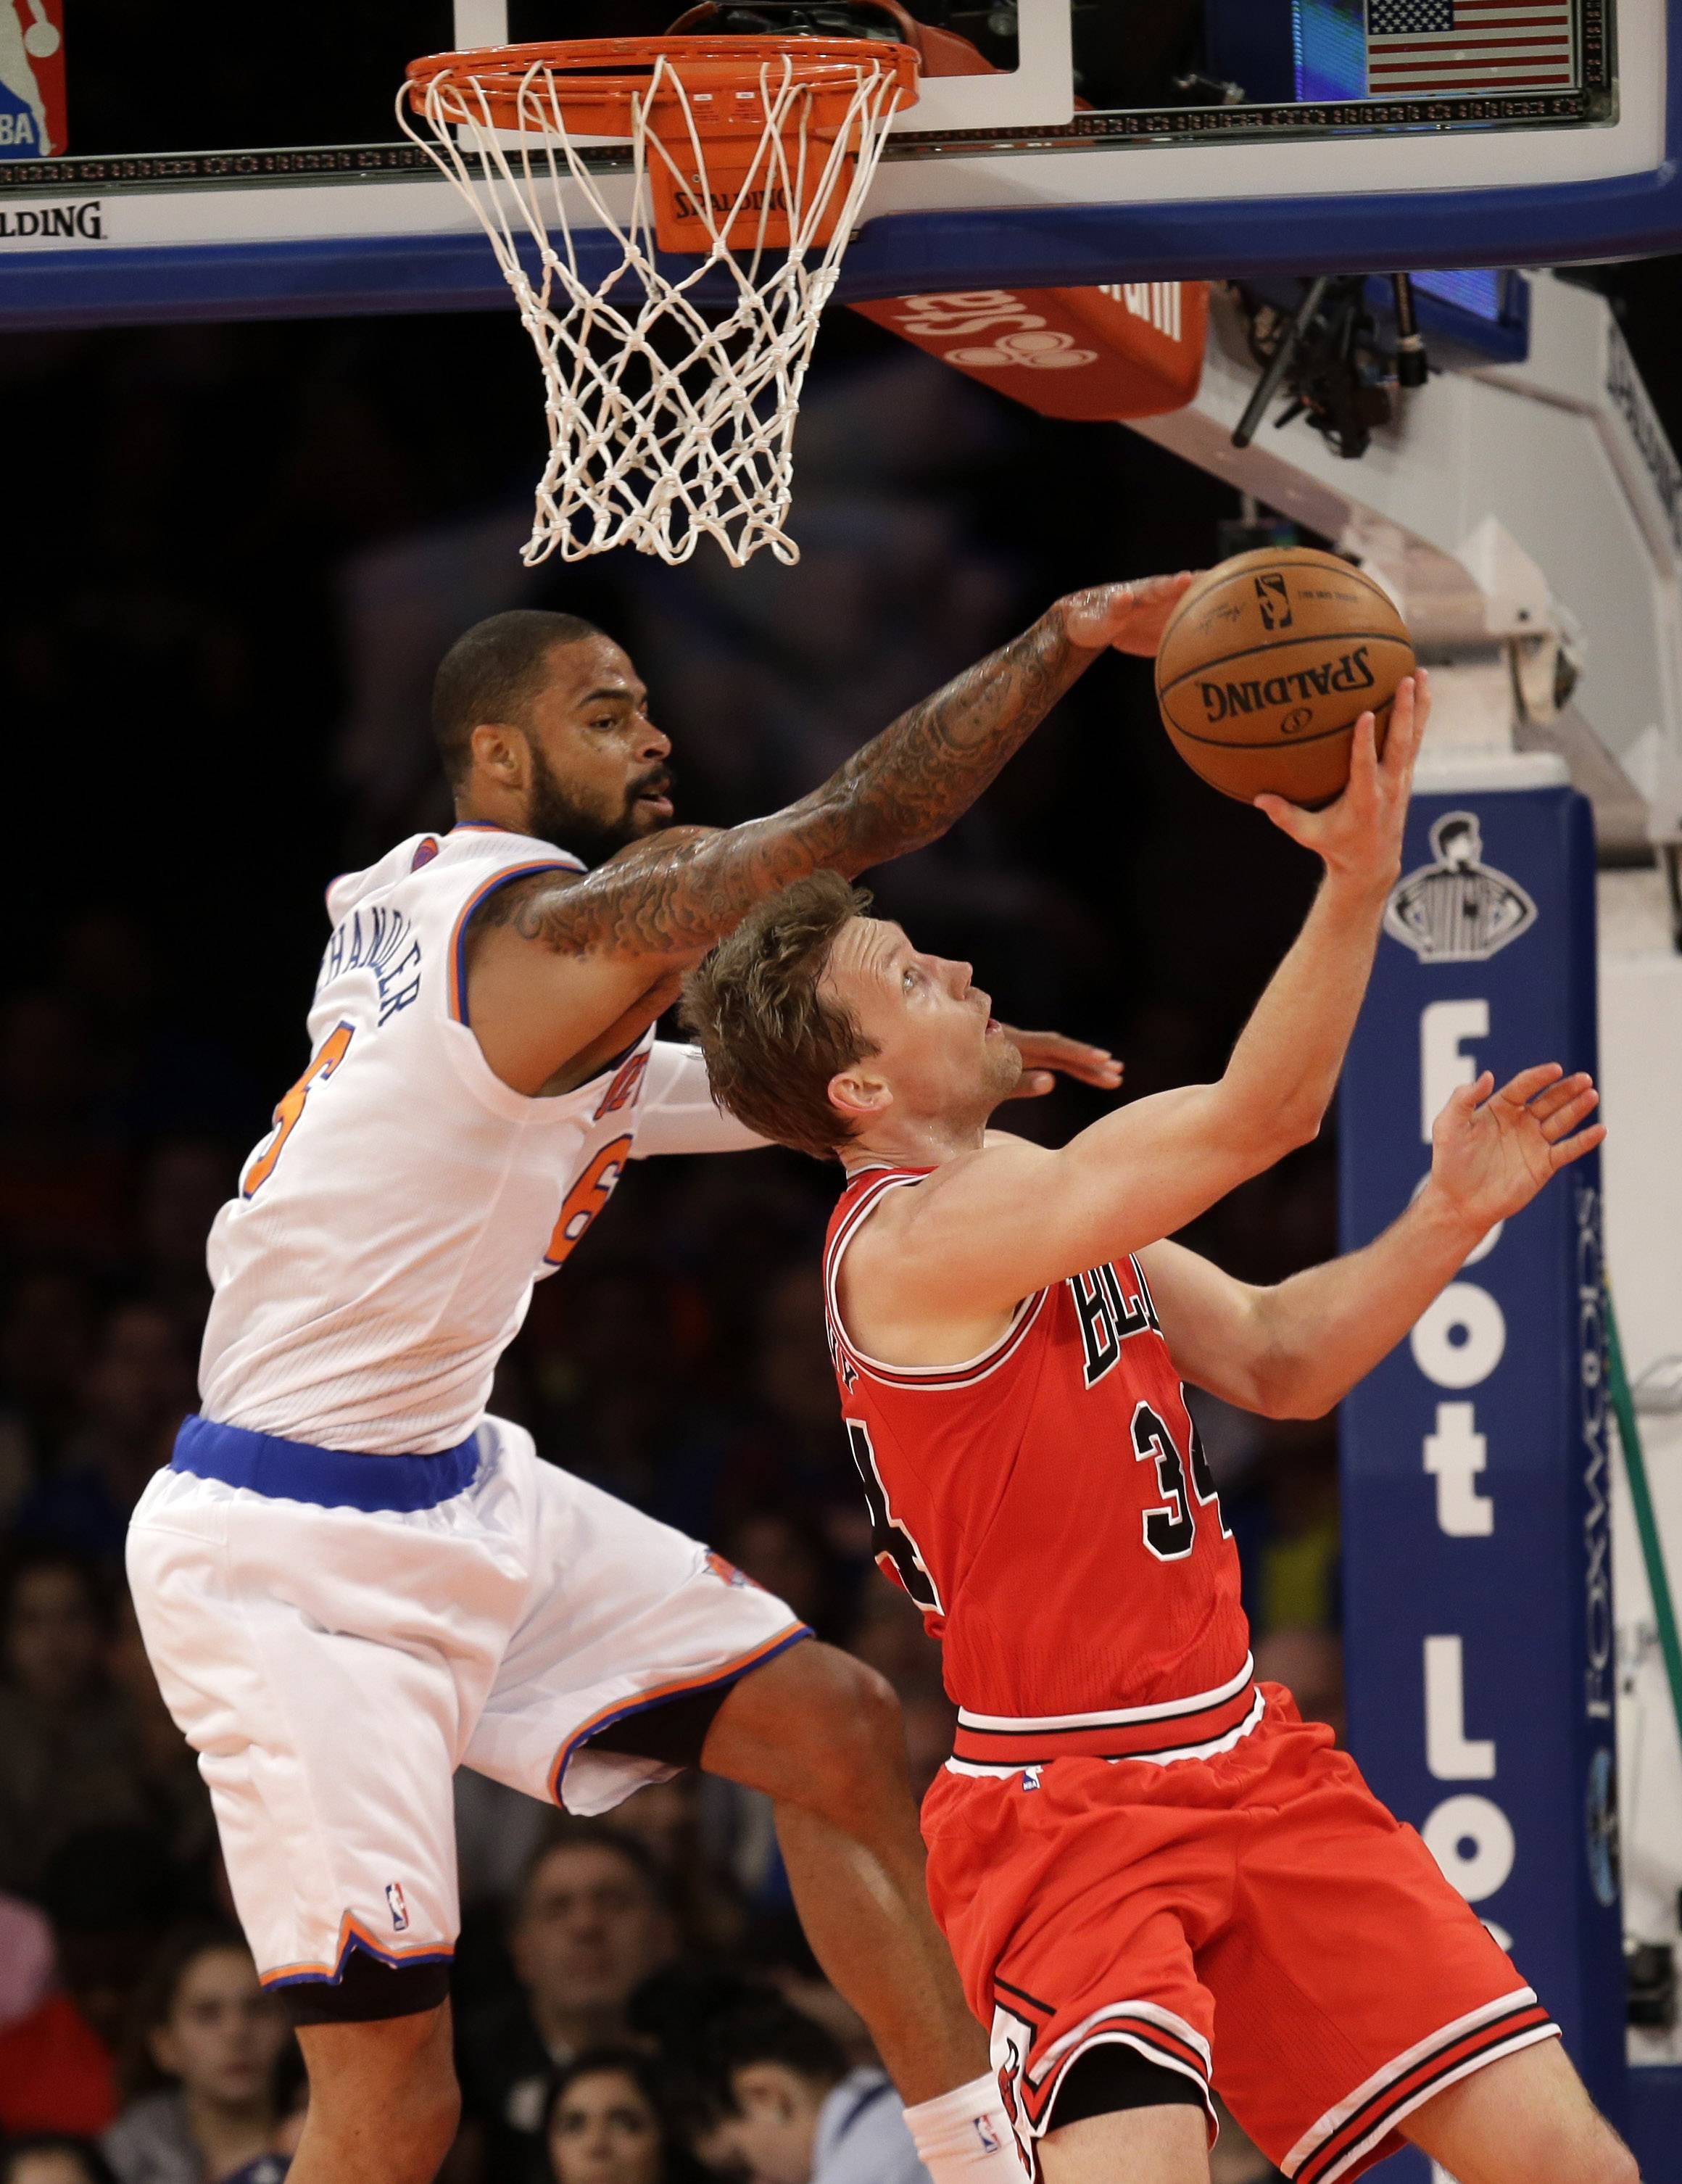 New York Knicks' Tyson Chandler, left, tries to block a shot by Chicago Bulls' Mike Dunleavy during the first half of the NBA basketball game, Sunday, April 13, 2014 in New York.